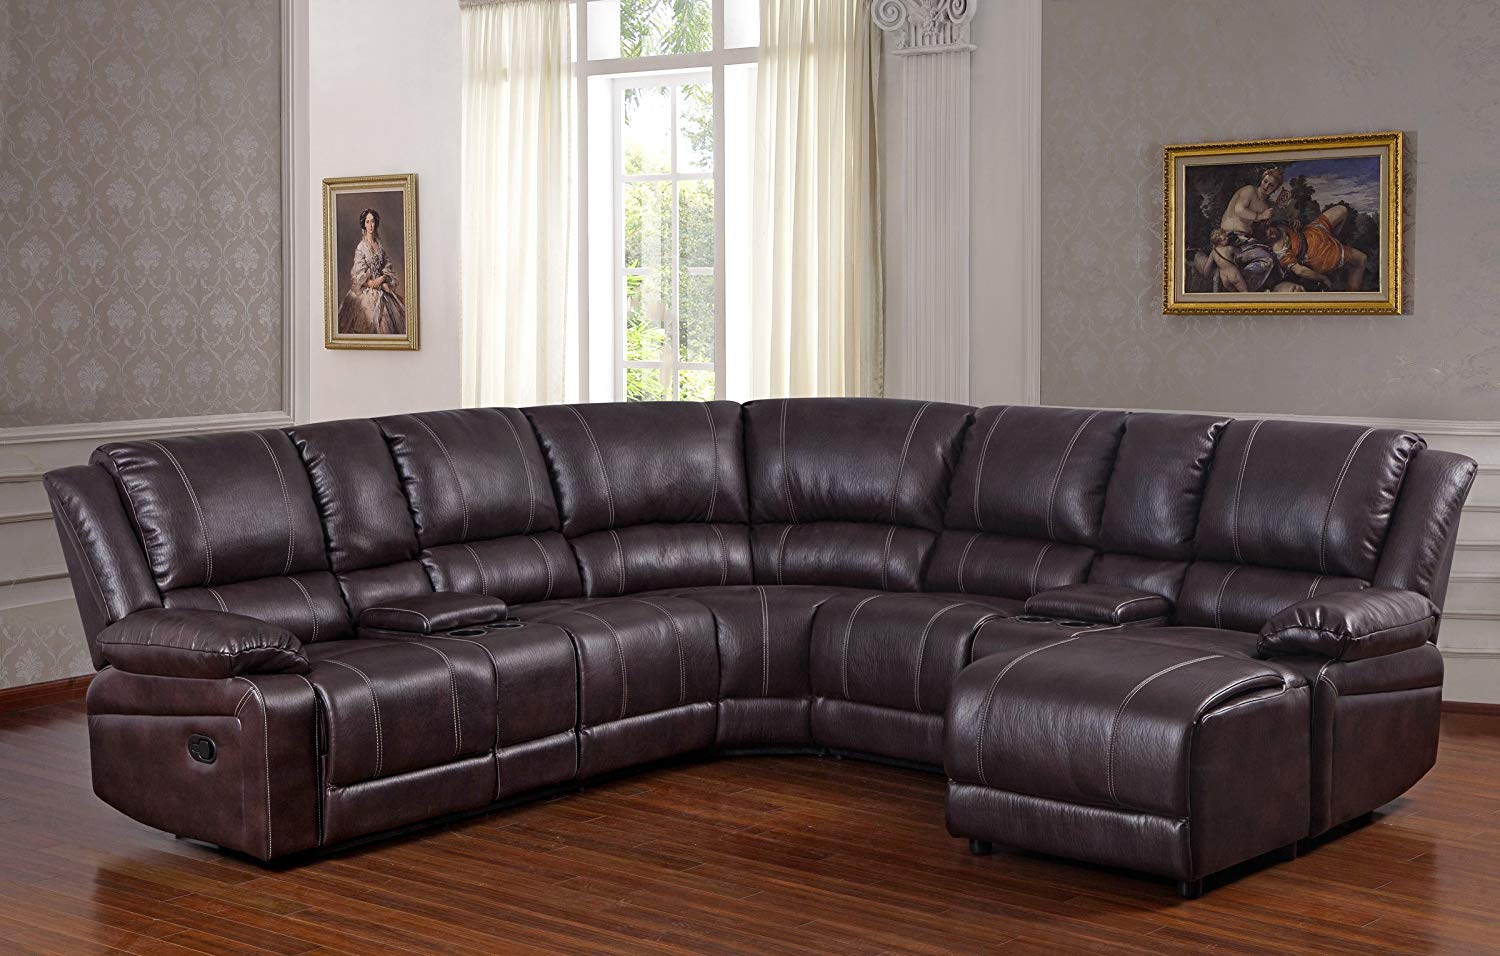 Pleasing Bubble Leather Brown Sectional Sofa With Recliner Chaise Console W Cup Holders Gmtry Best Dining Table And Chair Ideas Images Gmtryco